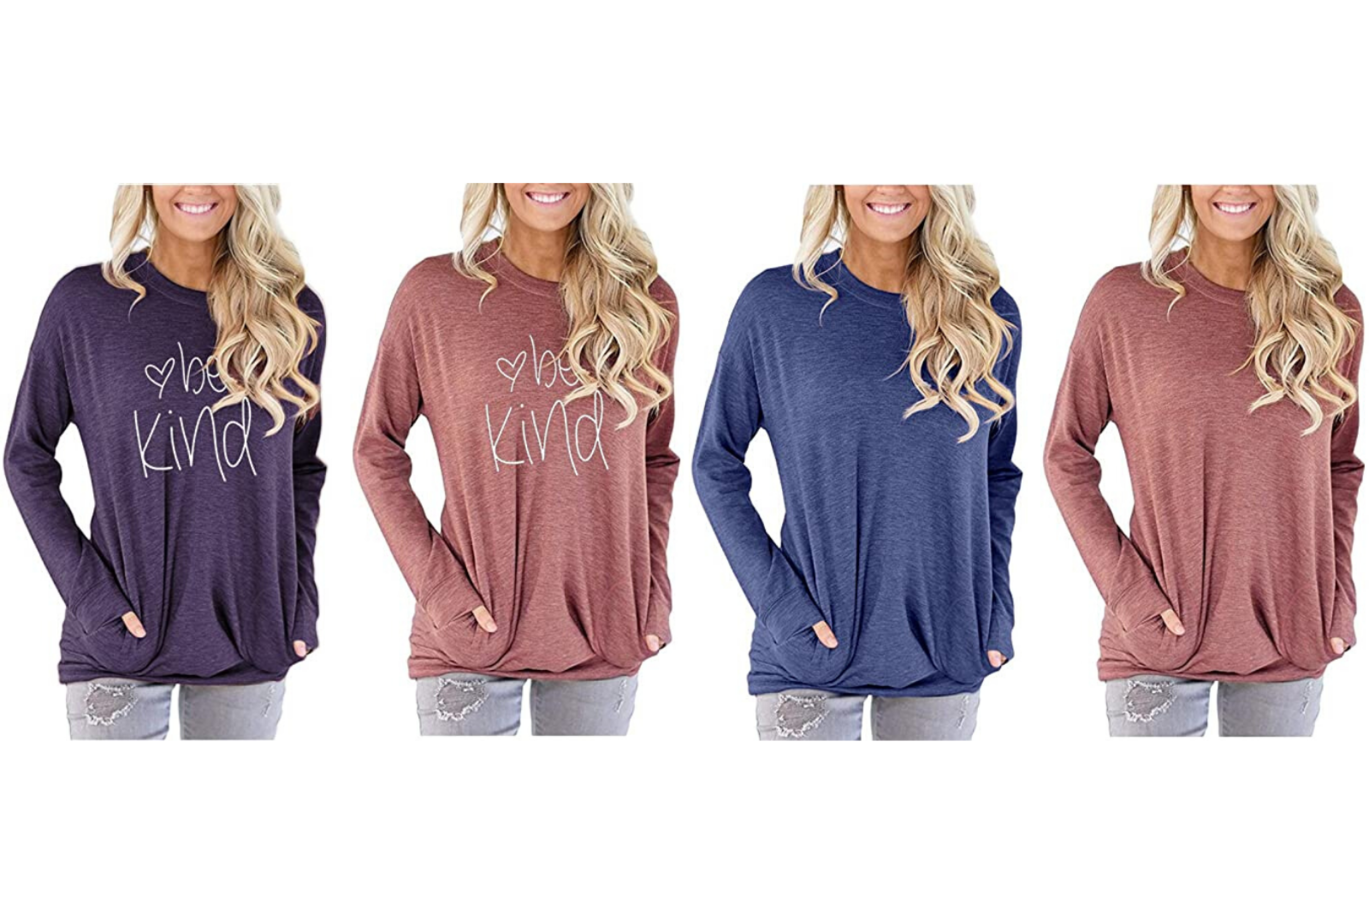 be kind amazon long sleeve tops